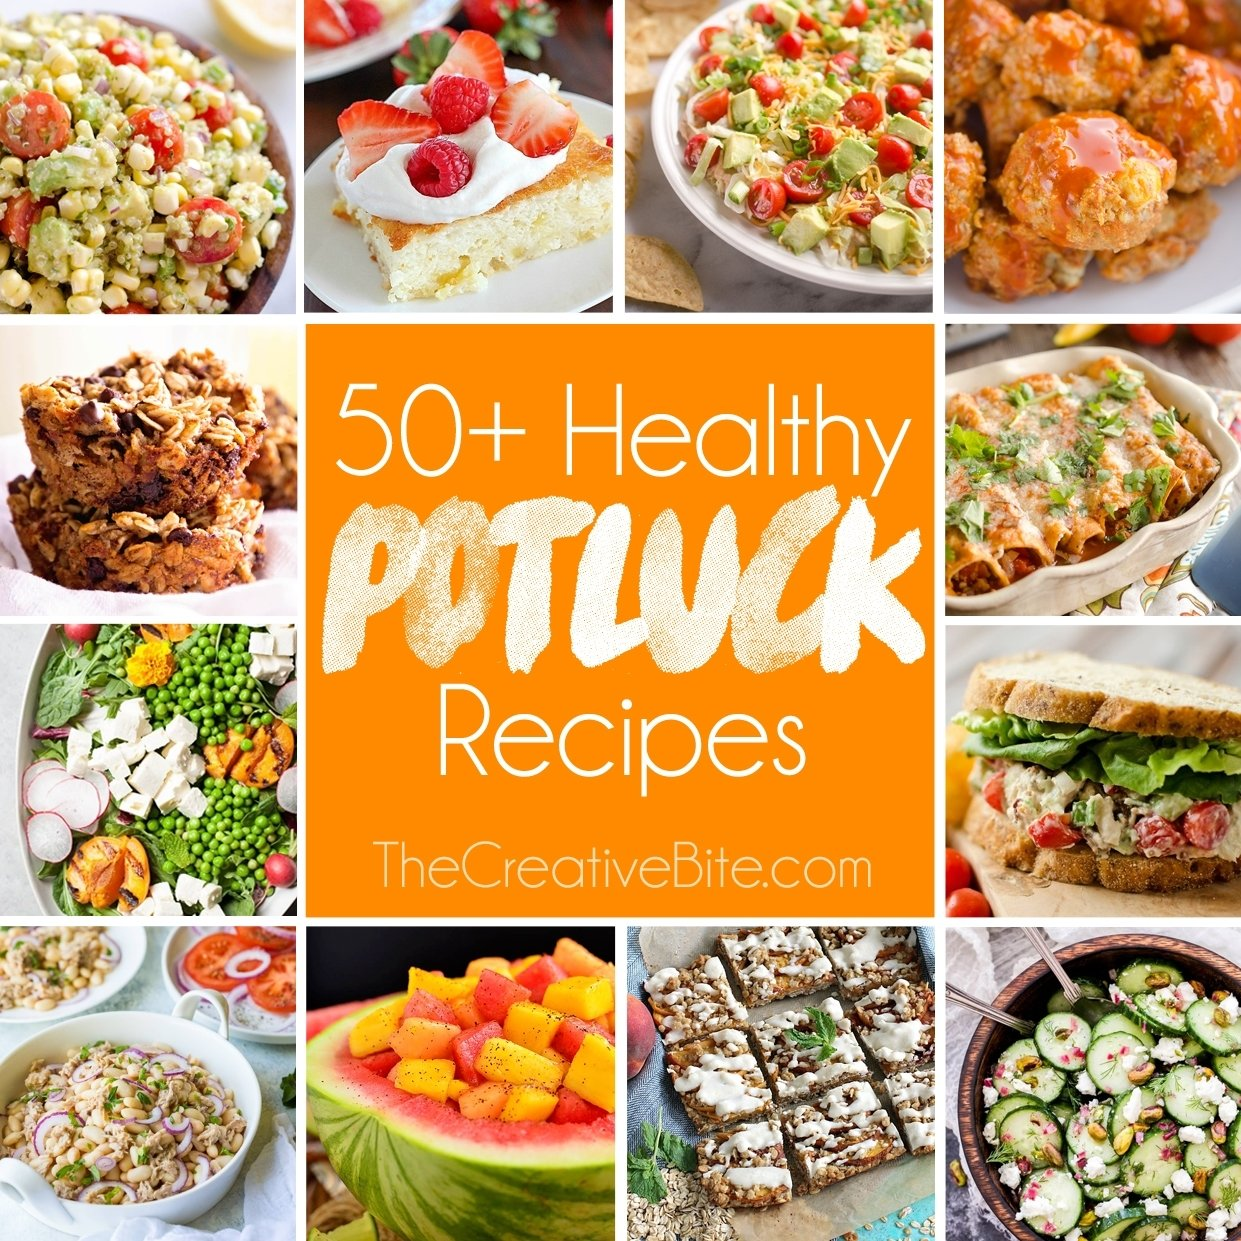 10 Nice Breakfast Potluck Ideas For Work 50 light healthy potluck recipes 3 2020